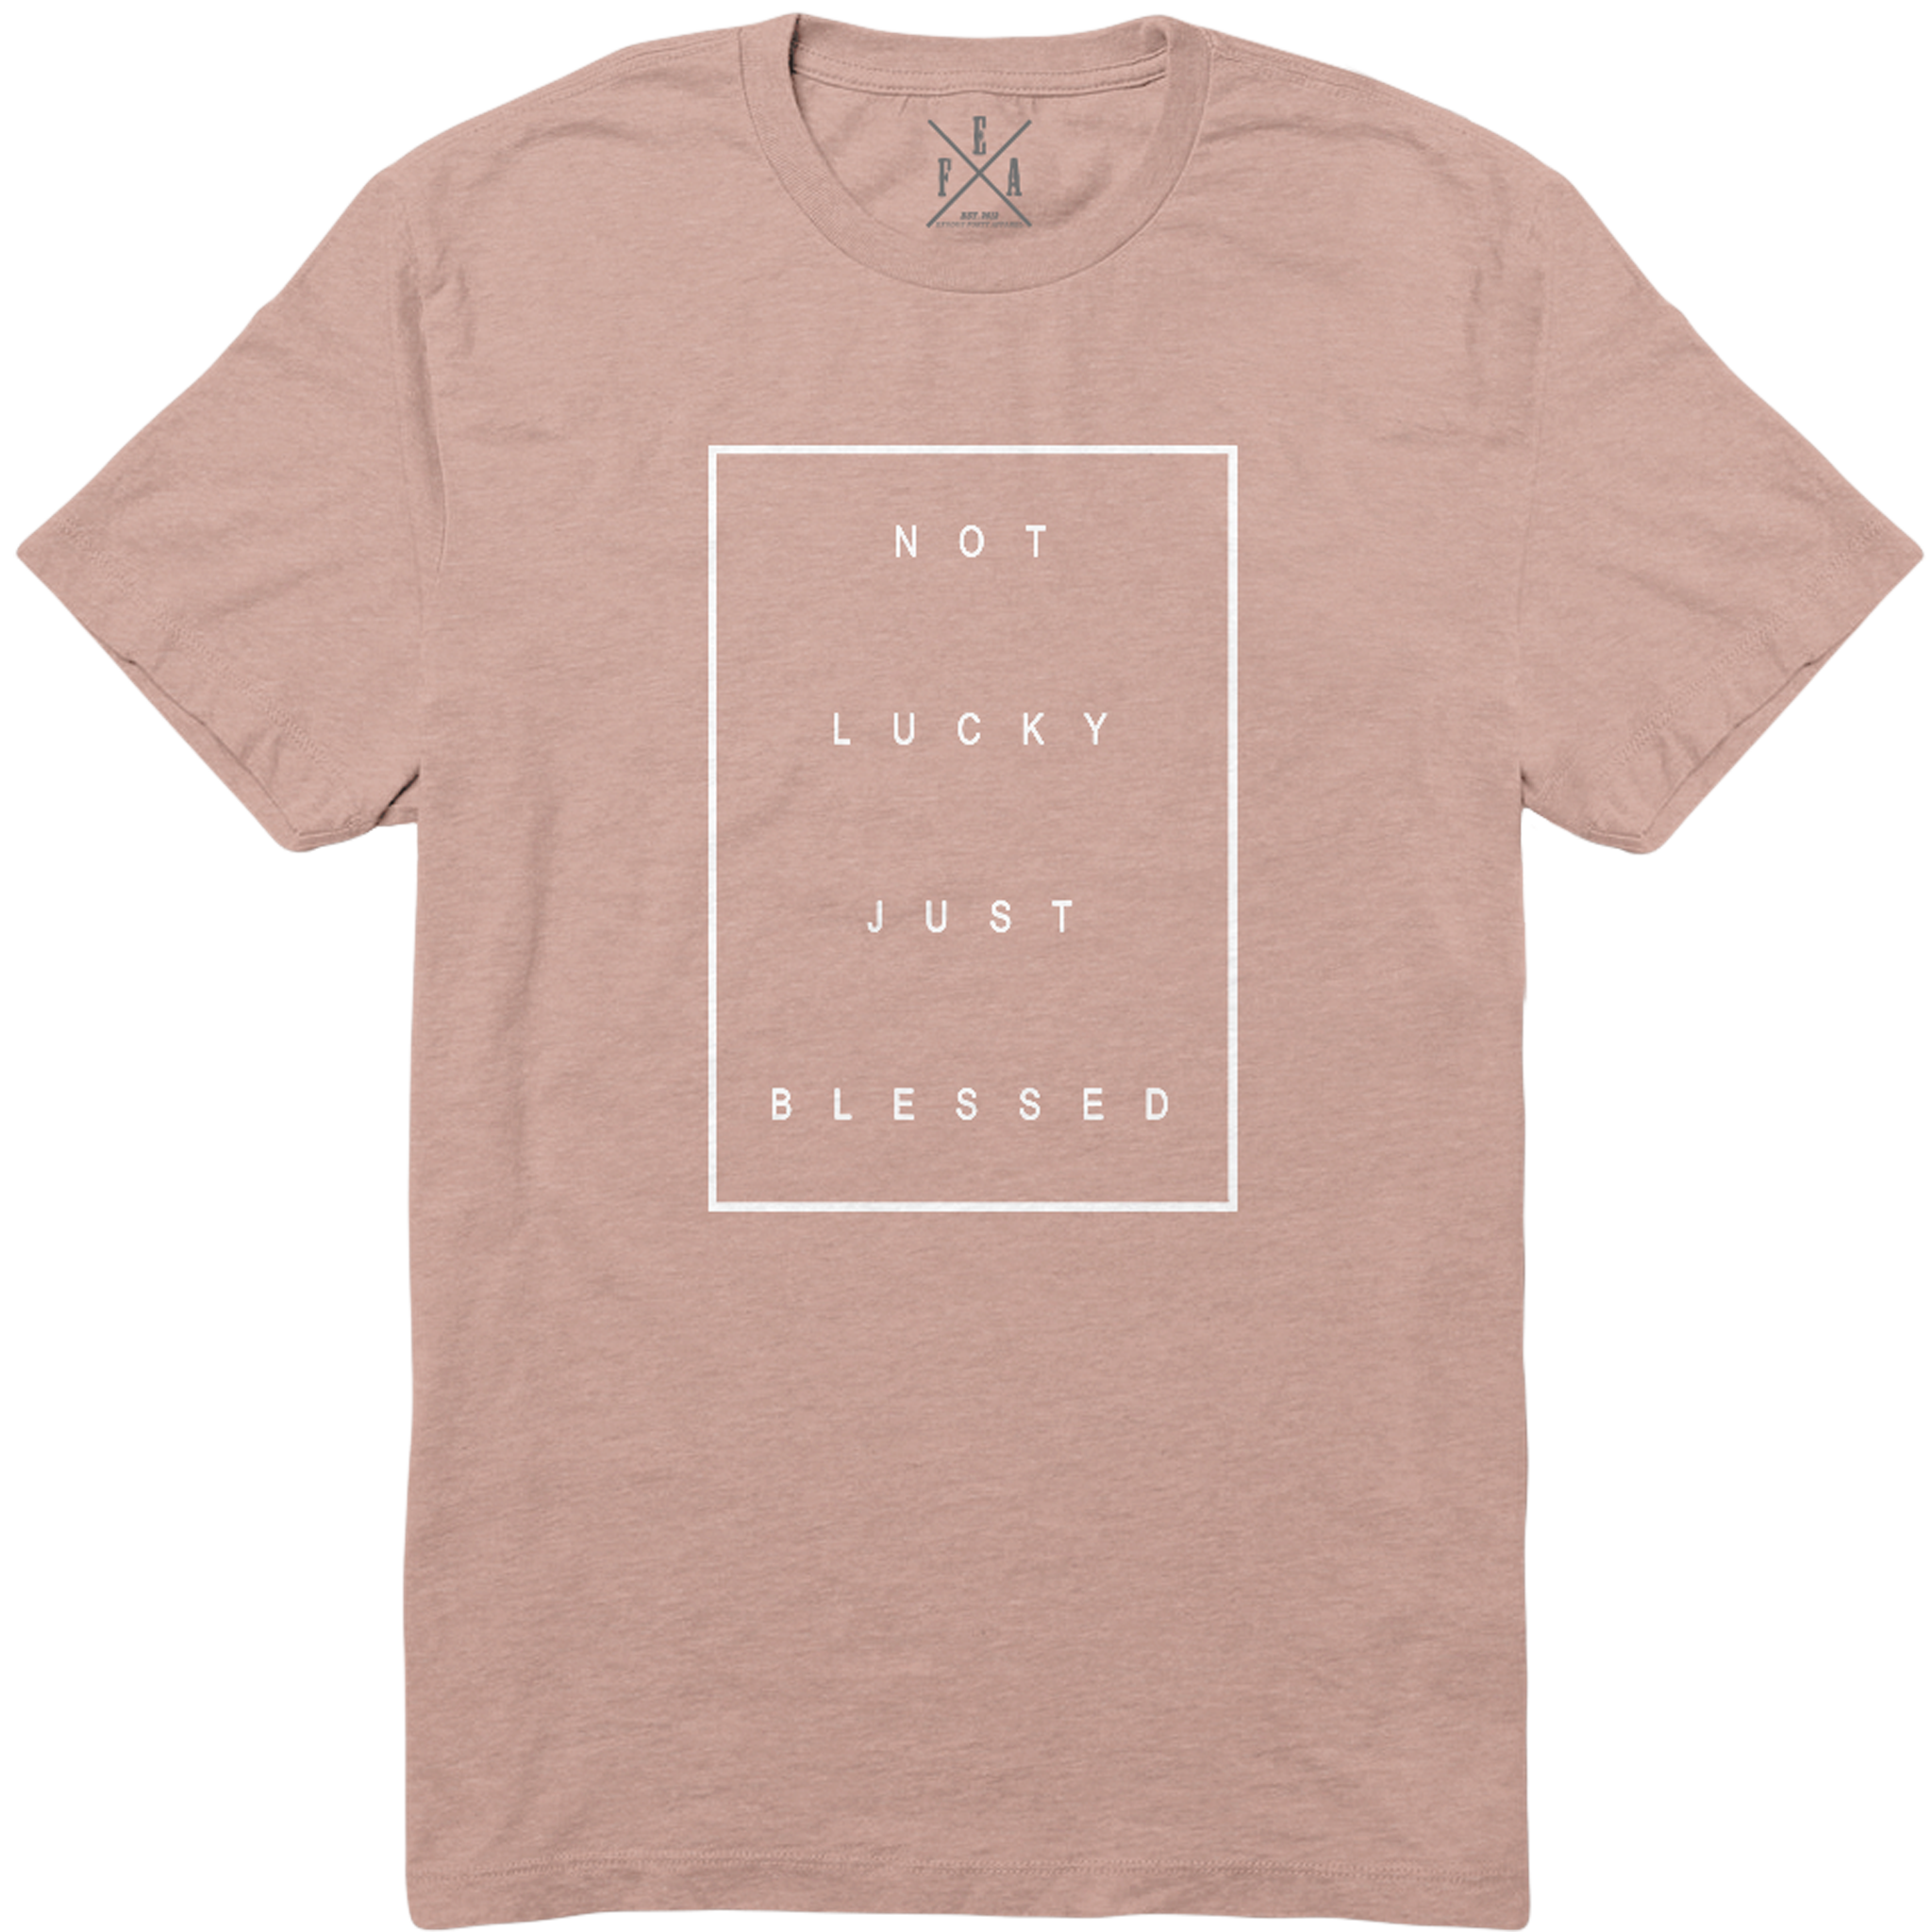 NOT LUCKY JUST BLESSED  - PEACH  TSHIRT